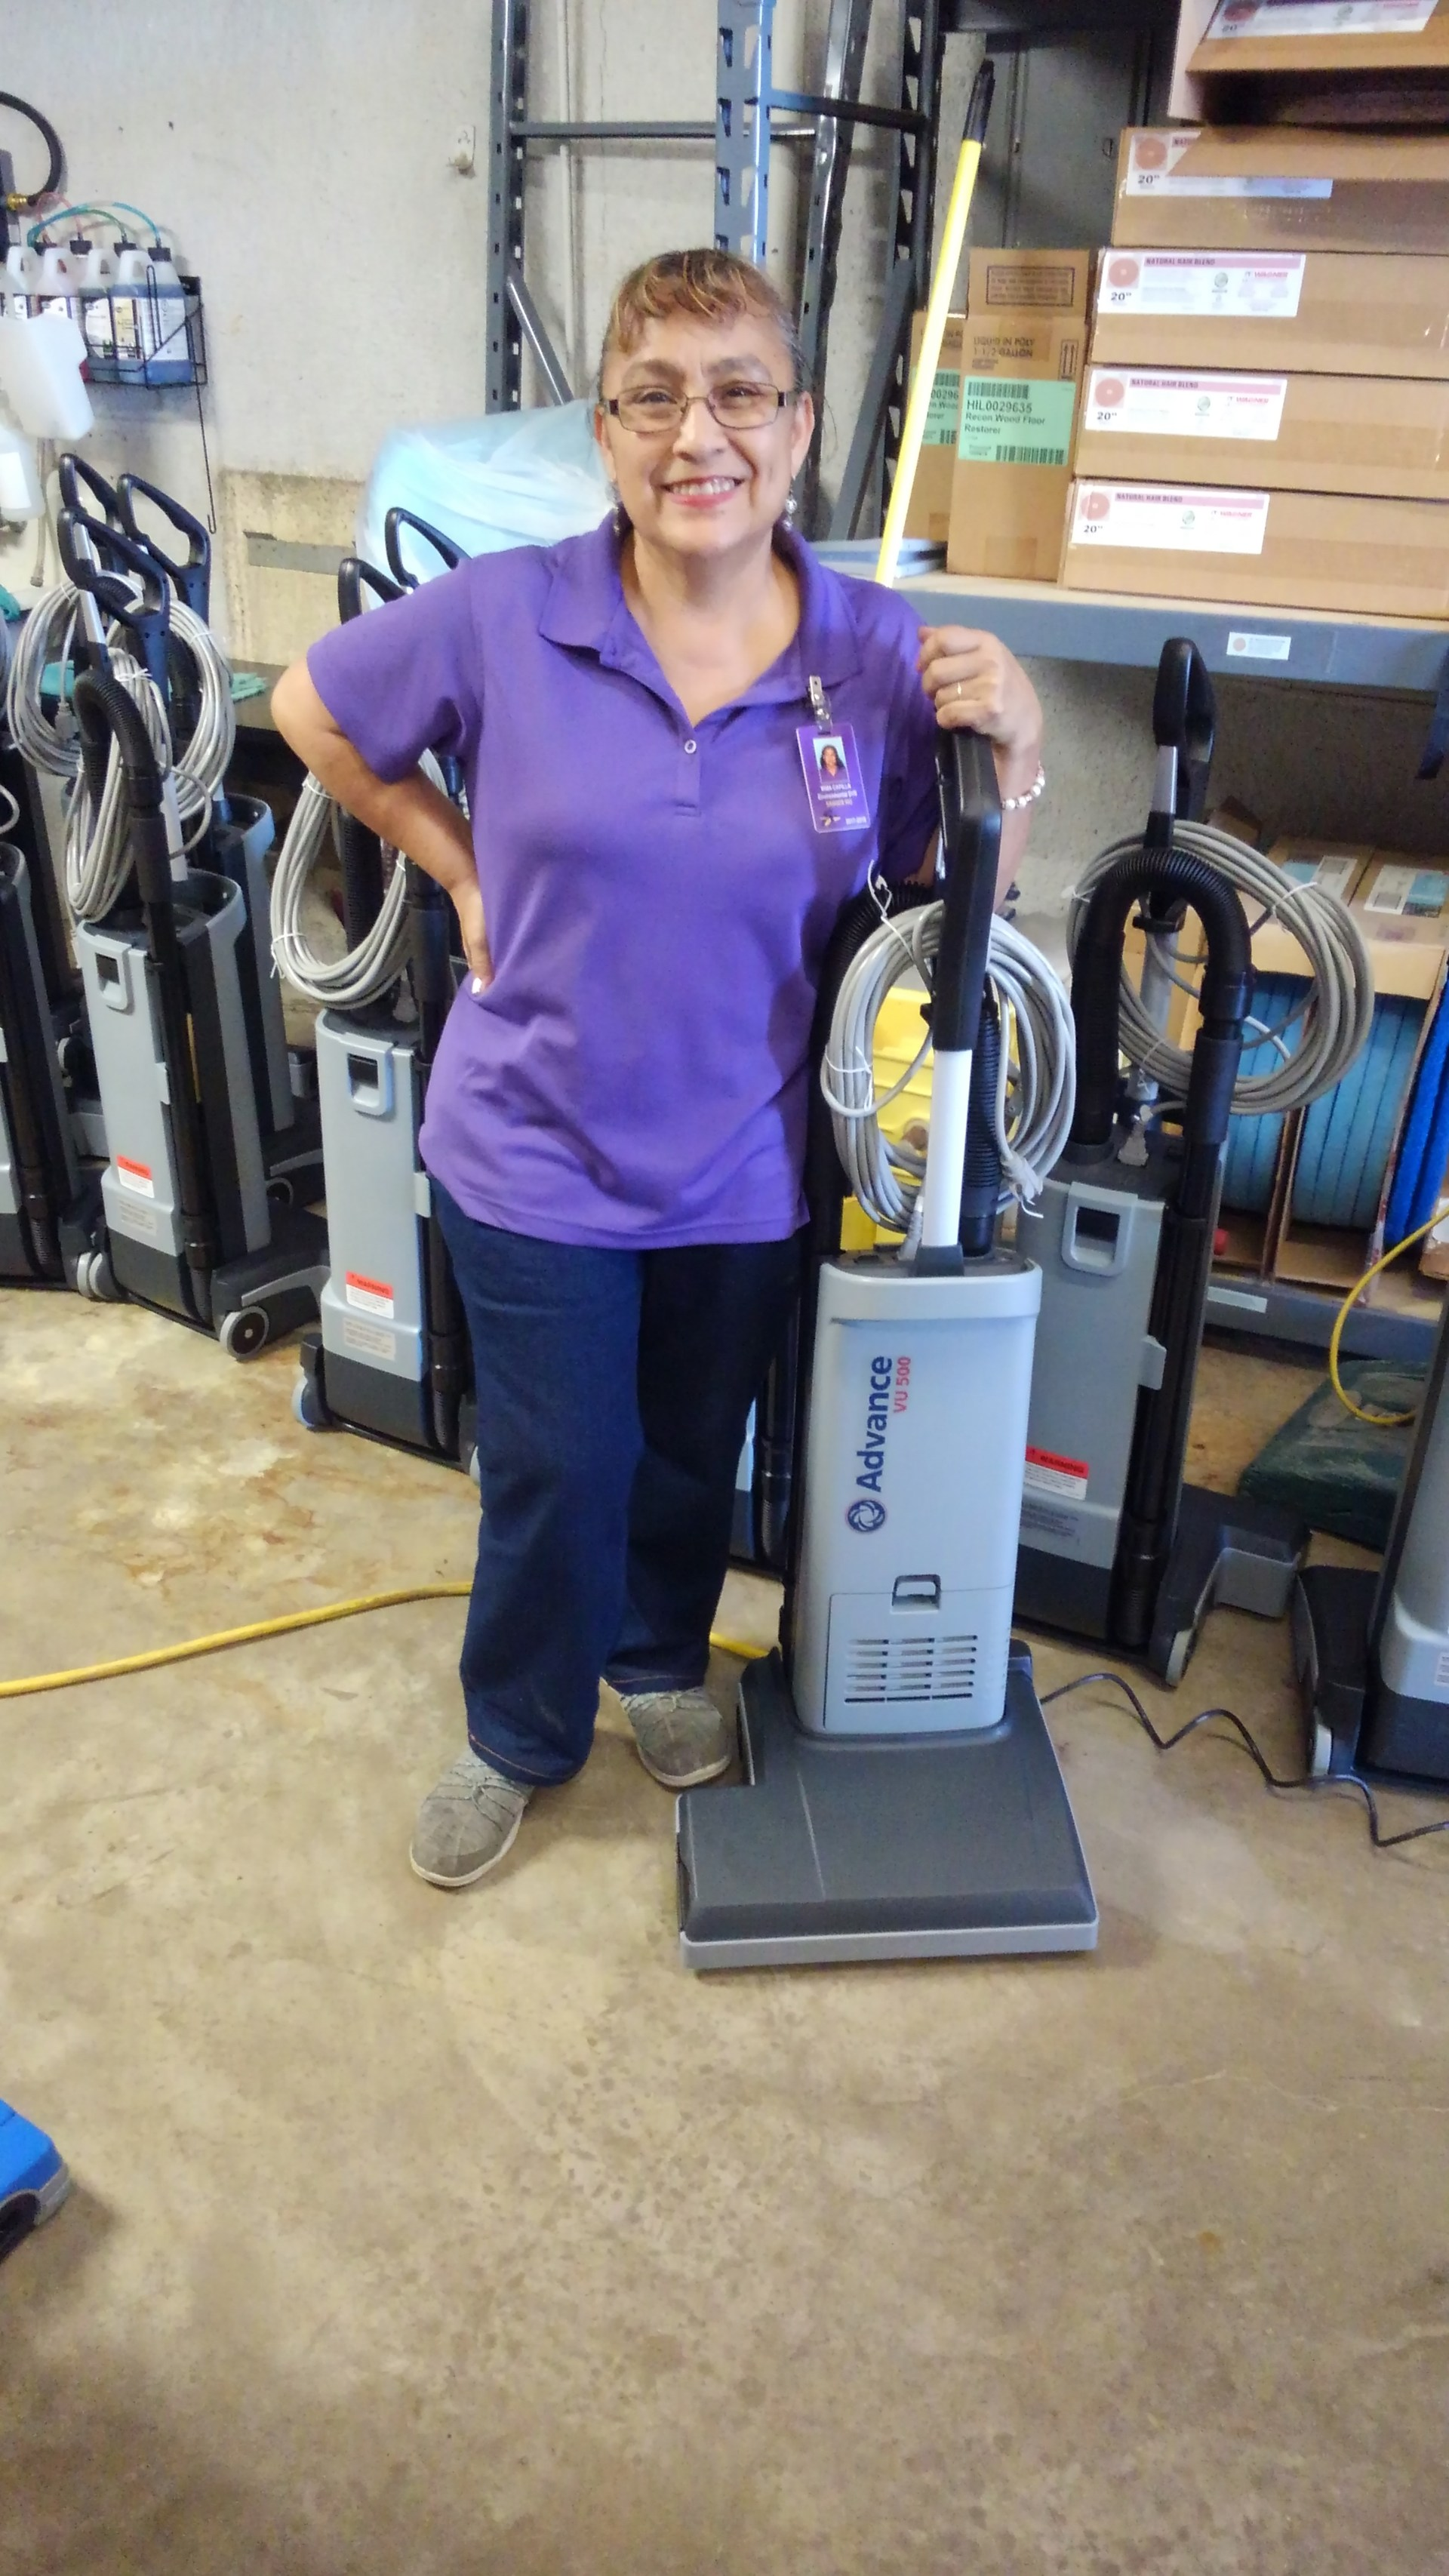 New vacuums for all staff members this year. Thank you SISD!